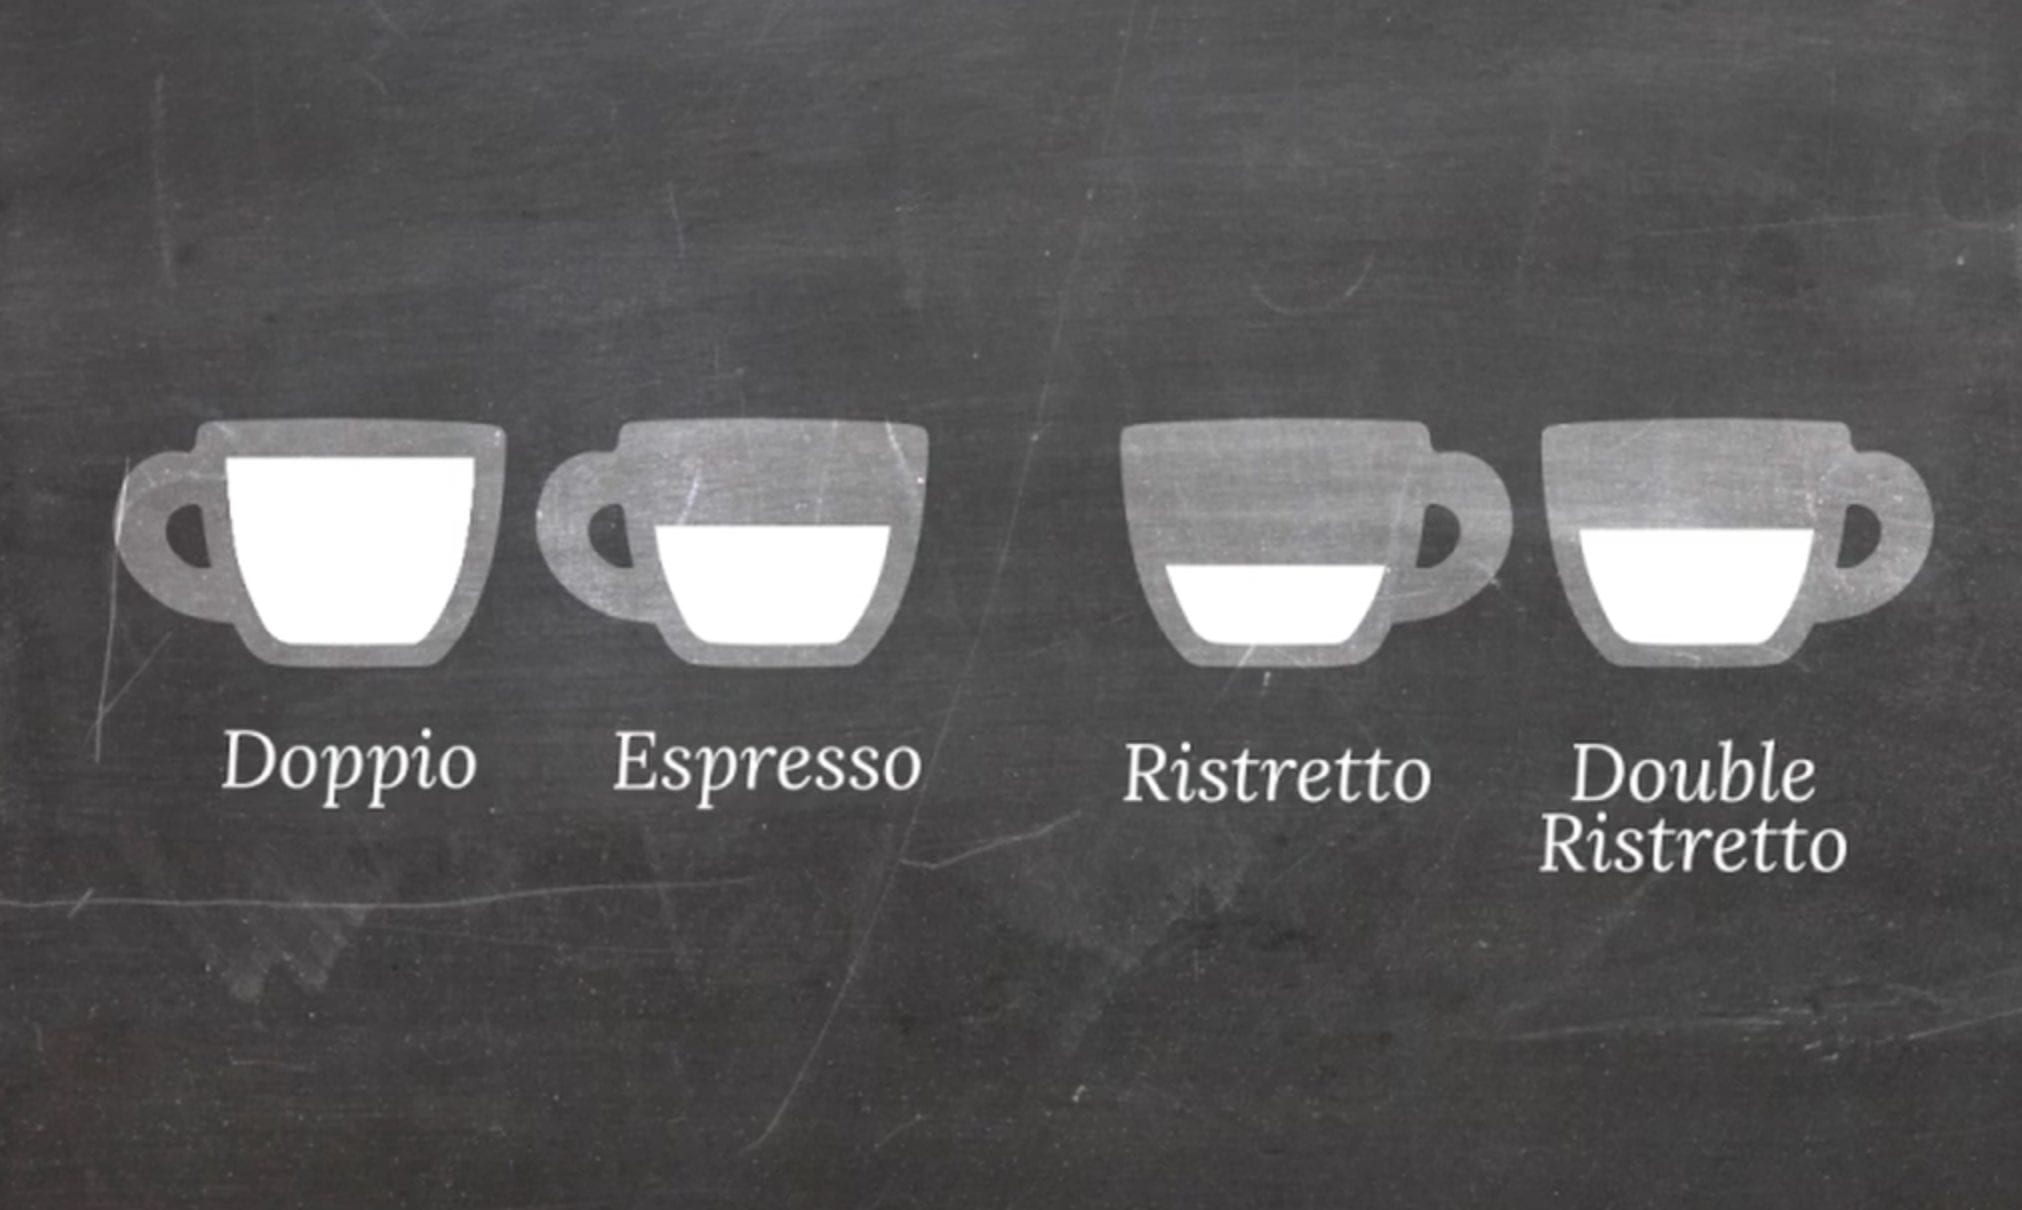 difference between espresso and ristretto